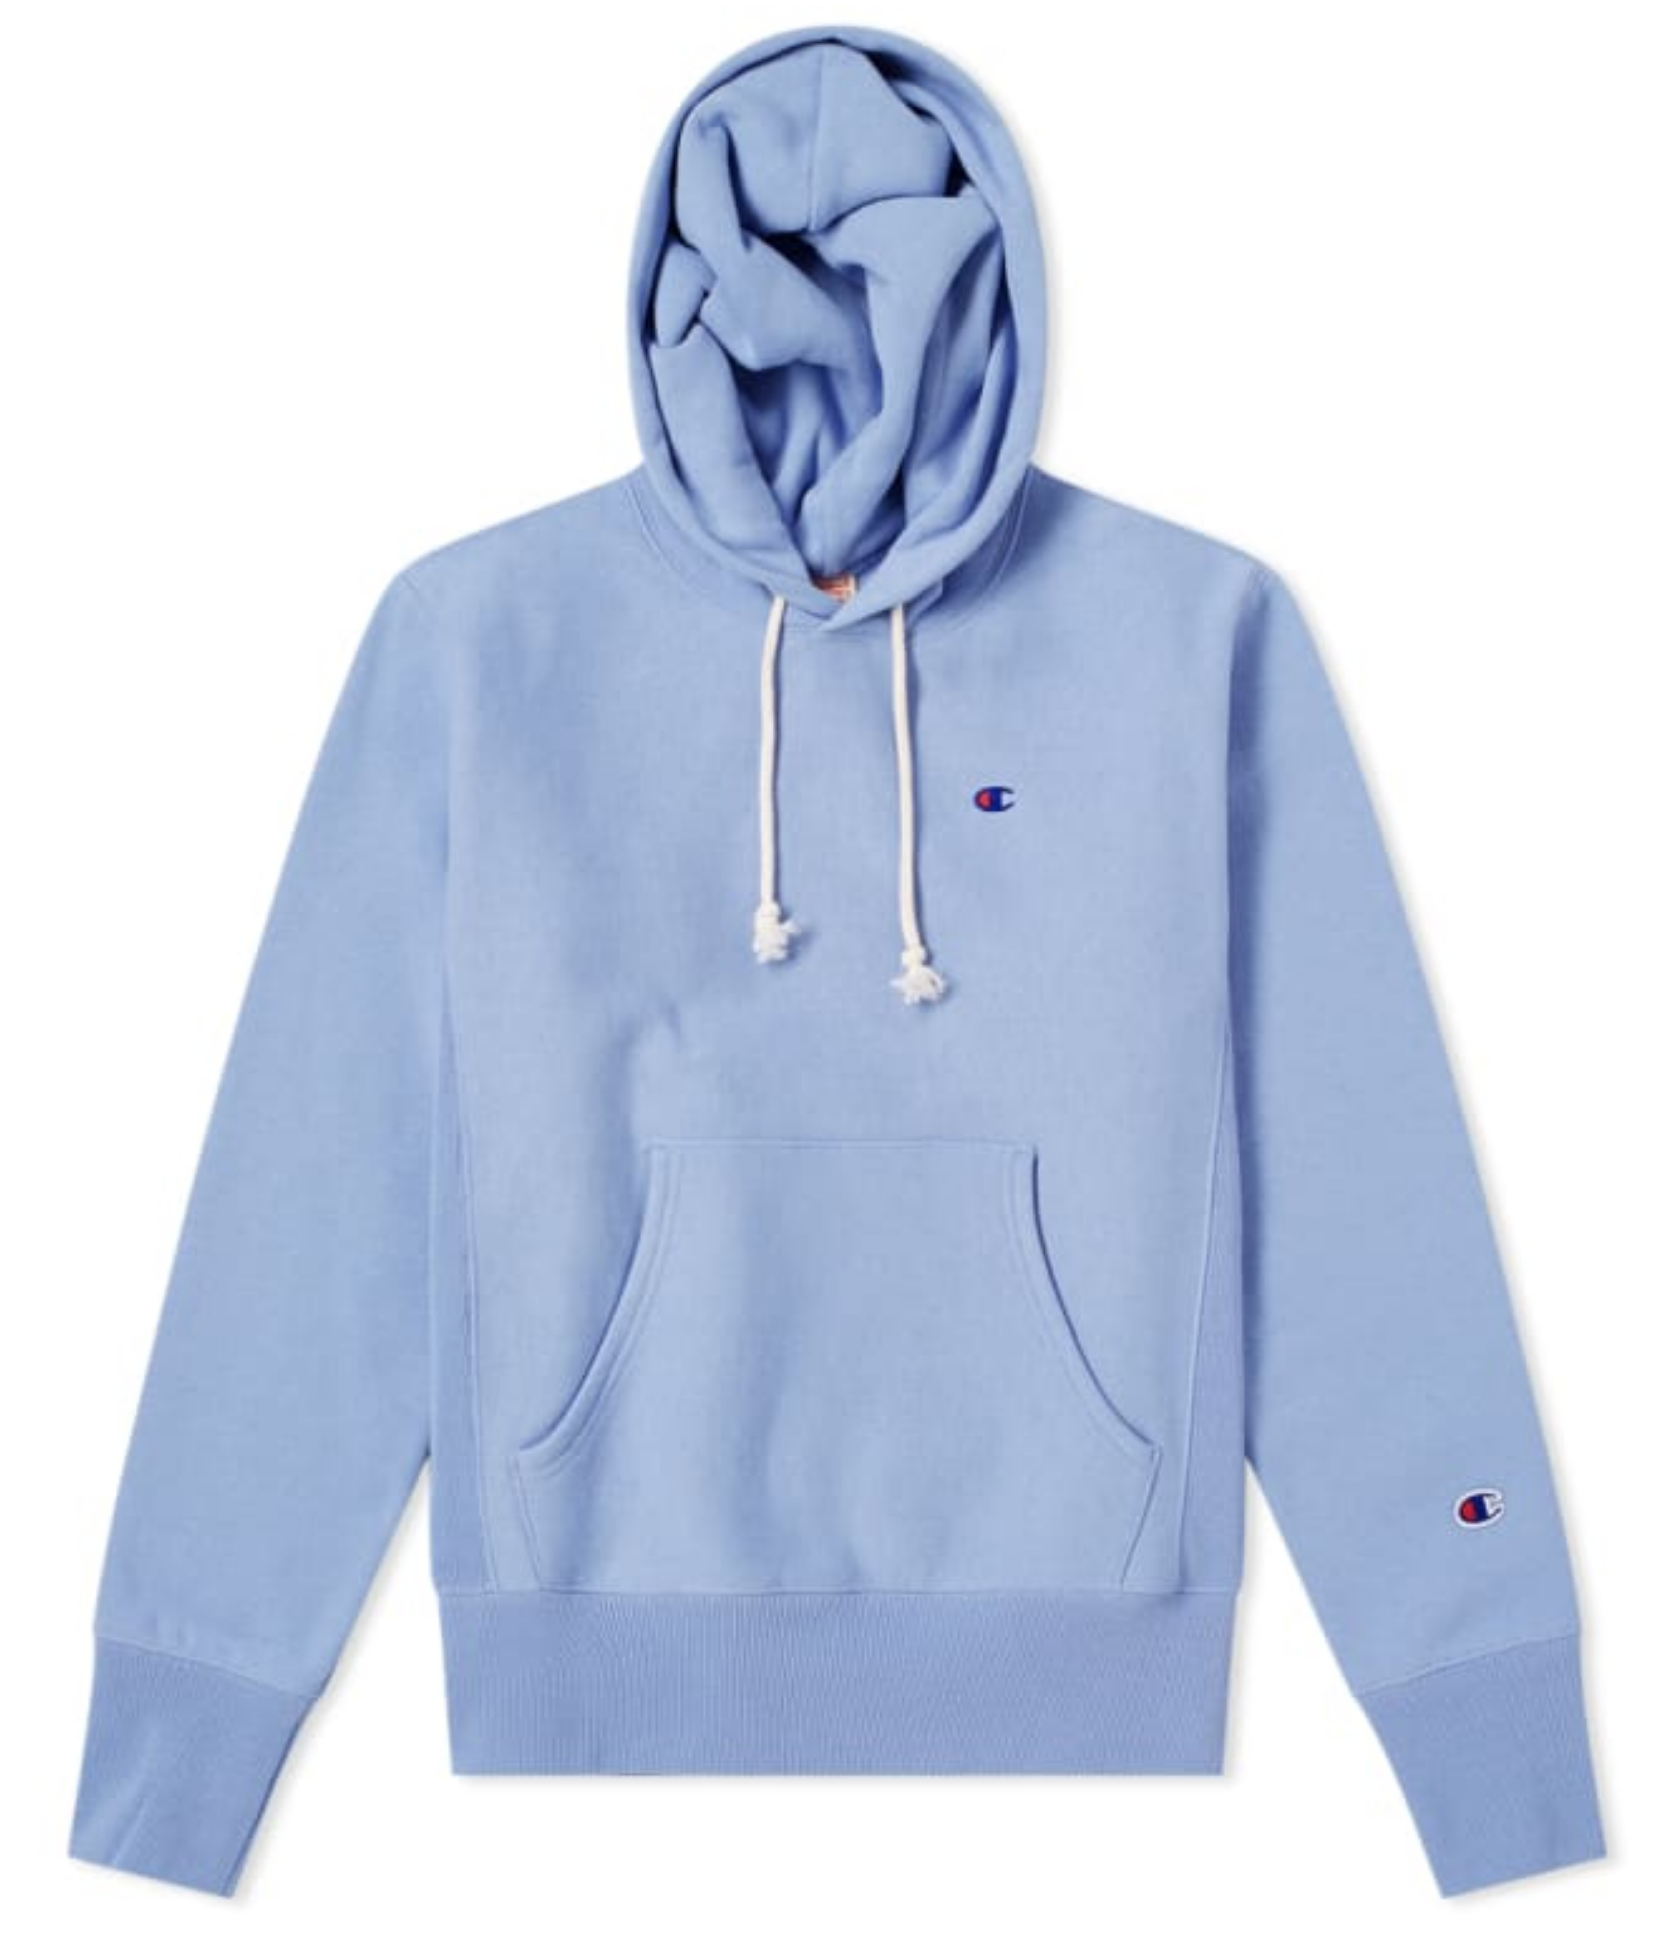 Champion Reverse Weave Classic Hoodie Lilac Wash Sky Blue Champion Clothing Hoodies Champion Reverse Weave [ 1938 x 1662 Pixel ]